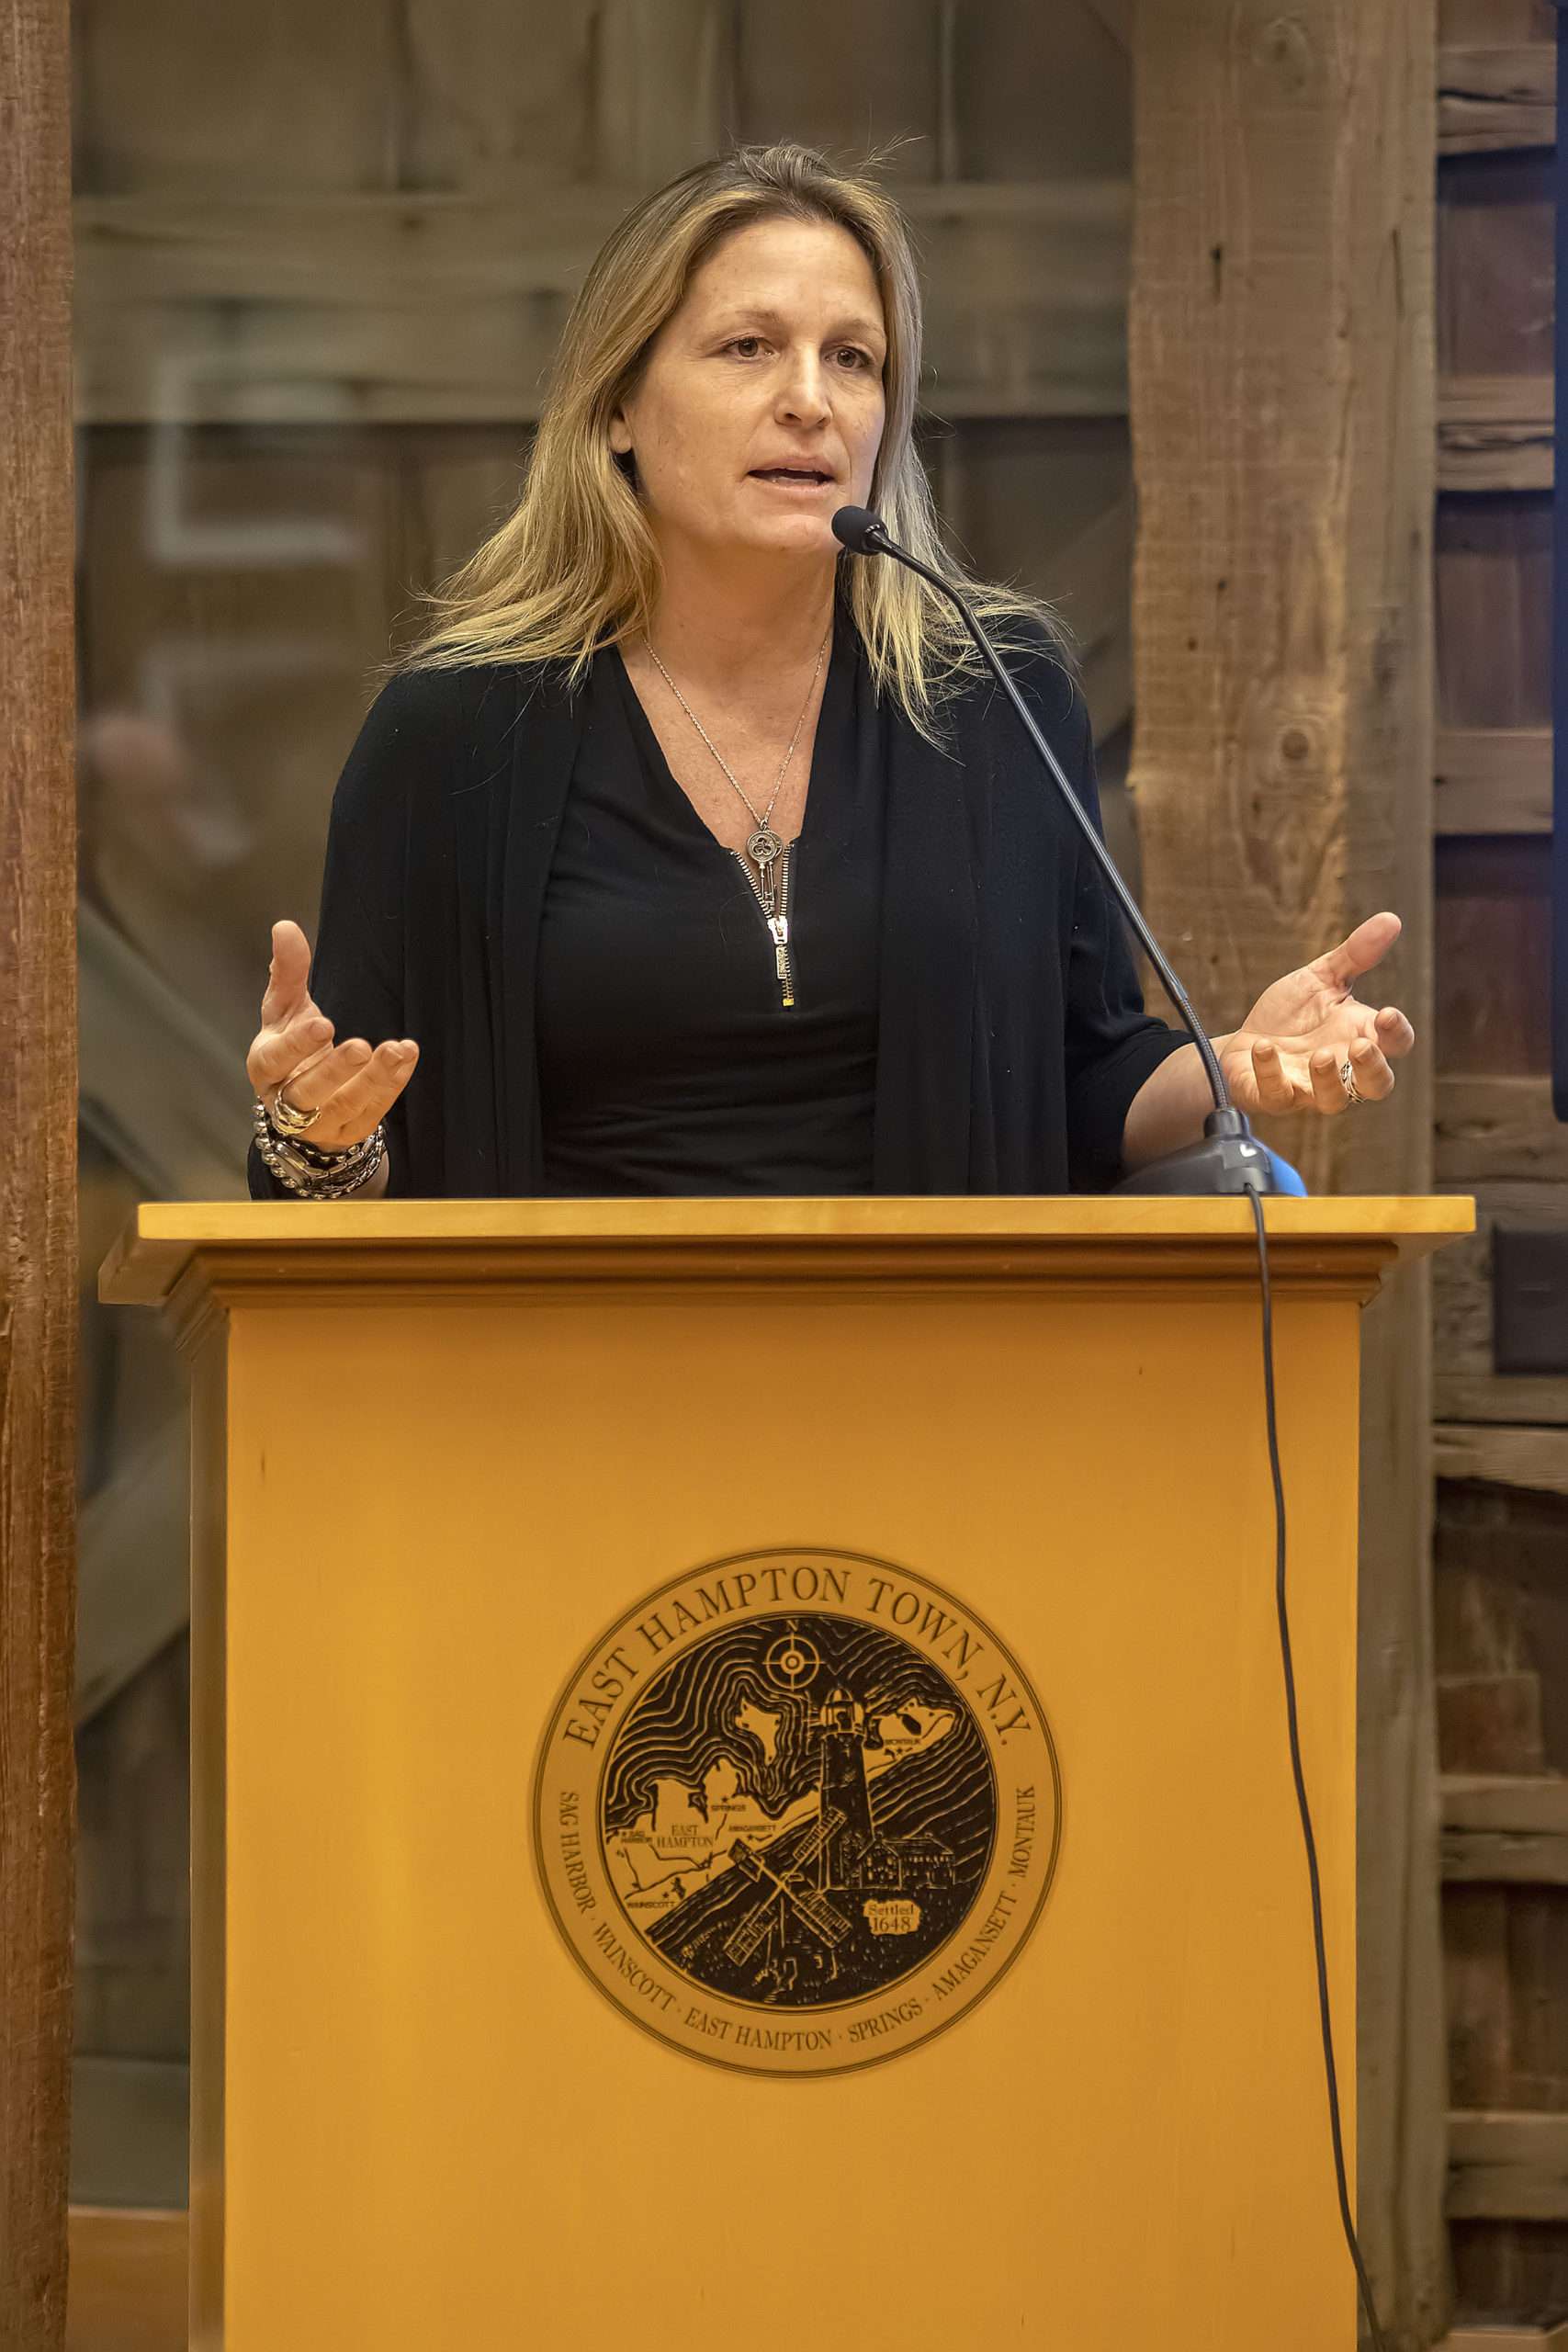 Singer-songwriter Nancy Atlas speaking at the last public discussion of the town's proposed amendments to the live music permit.